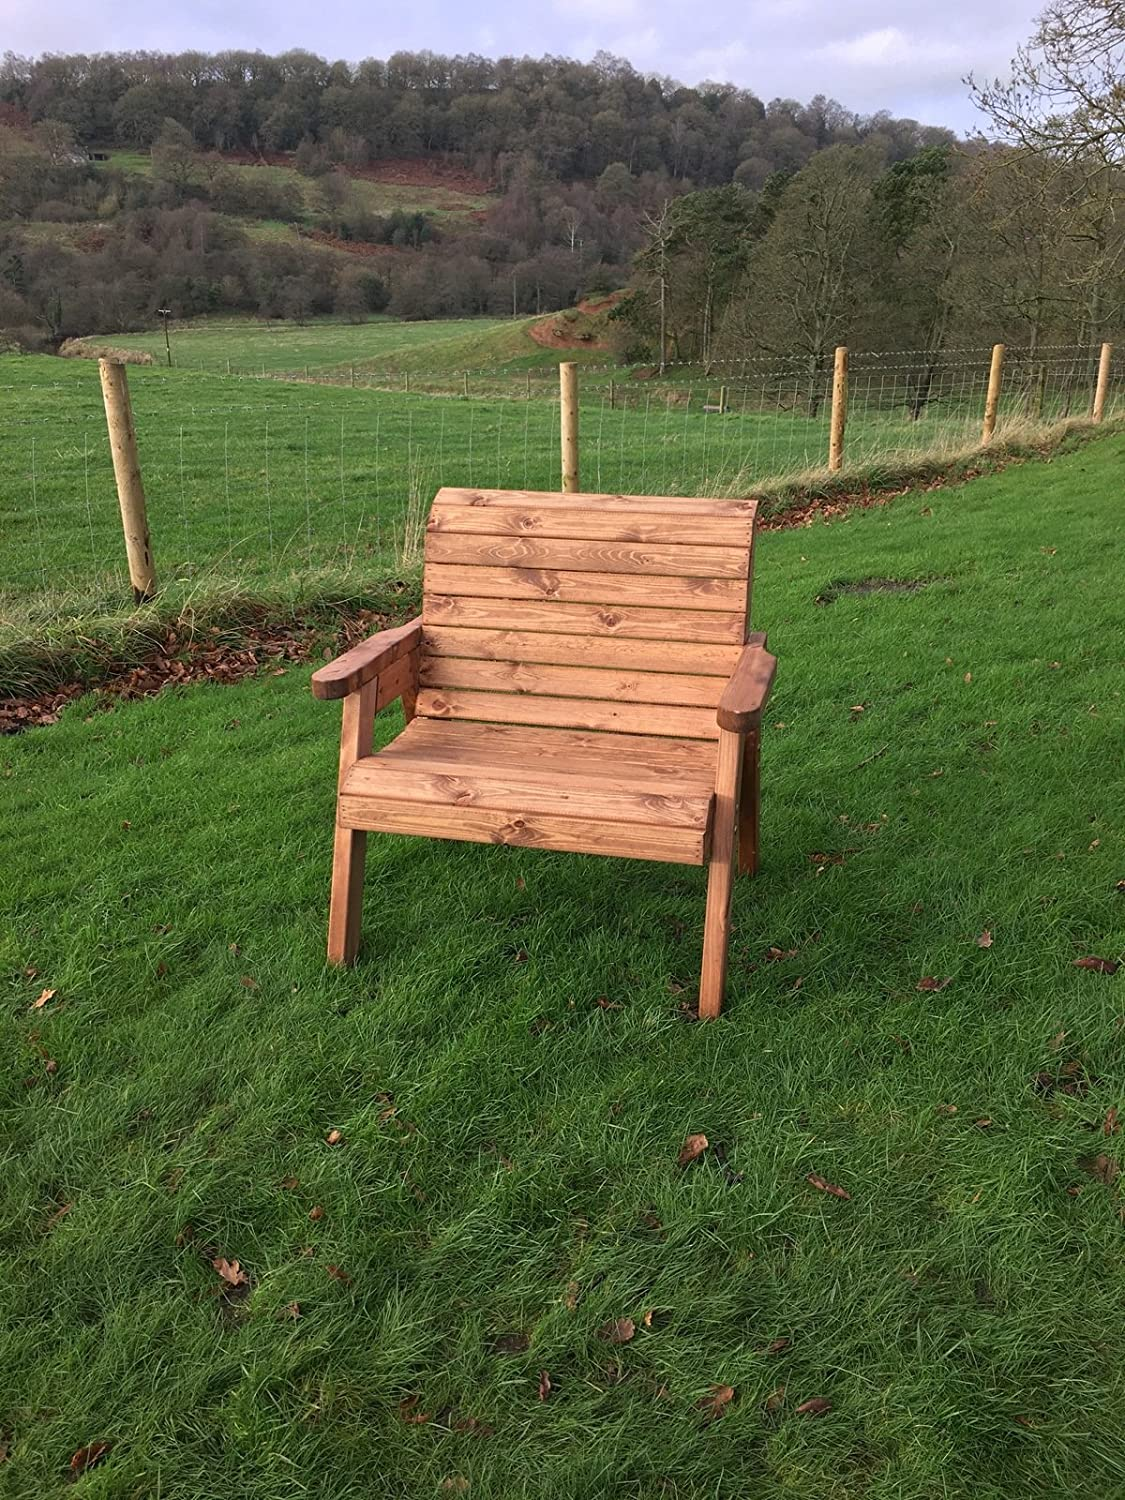 UKG Heavy Duty Large Extra Wide Wooden Garden Arm Chair With Extra  Stability   UK Handmade. UK Handmade Heavy Duty Wooden Garden Chair Connecting Tray Table